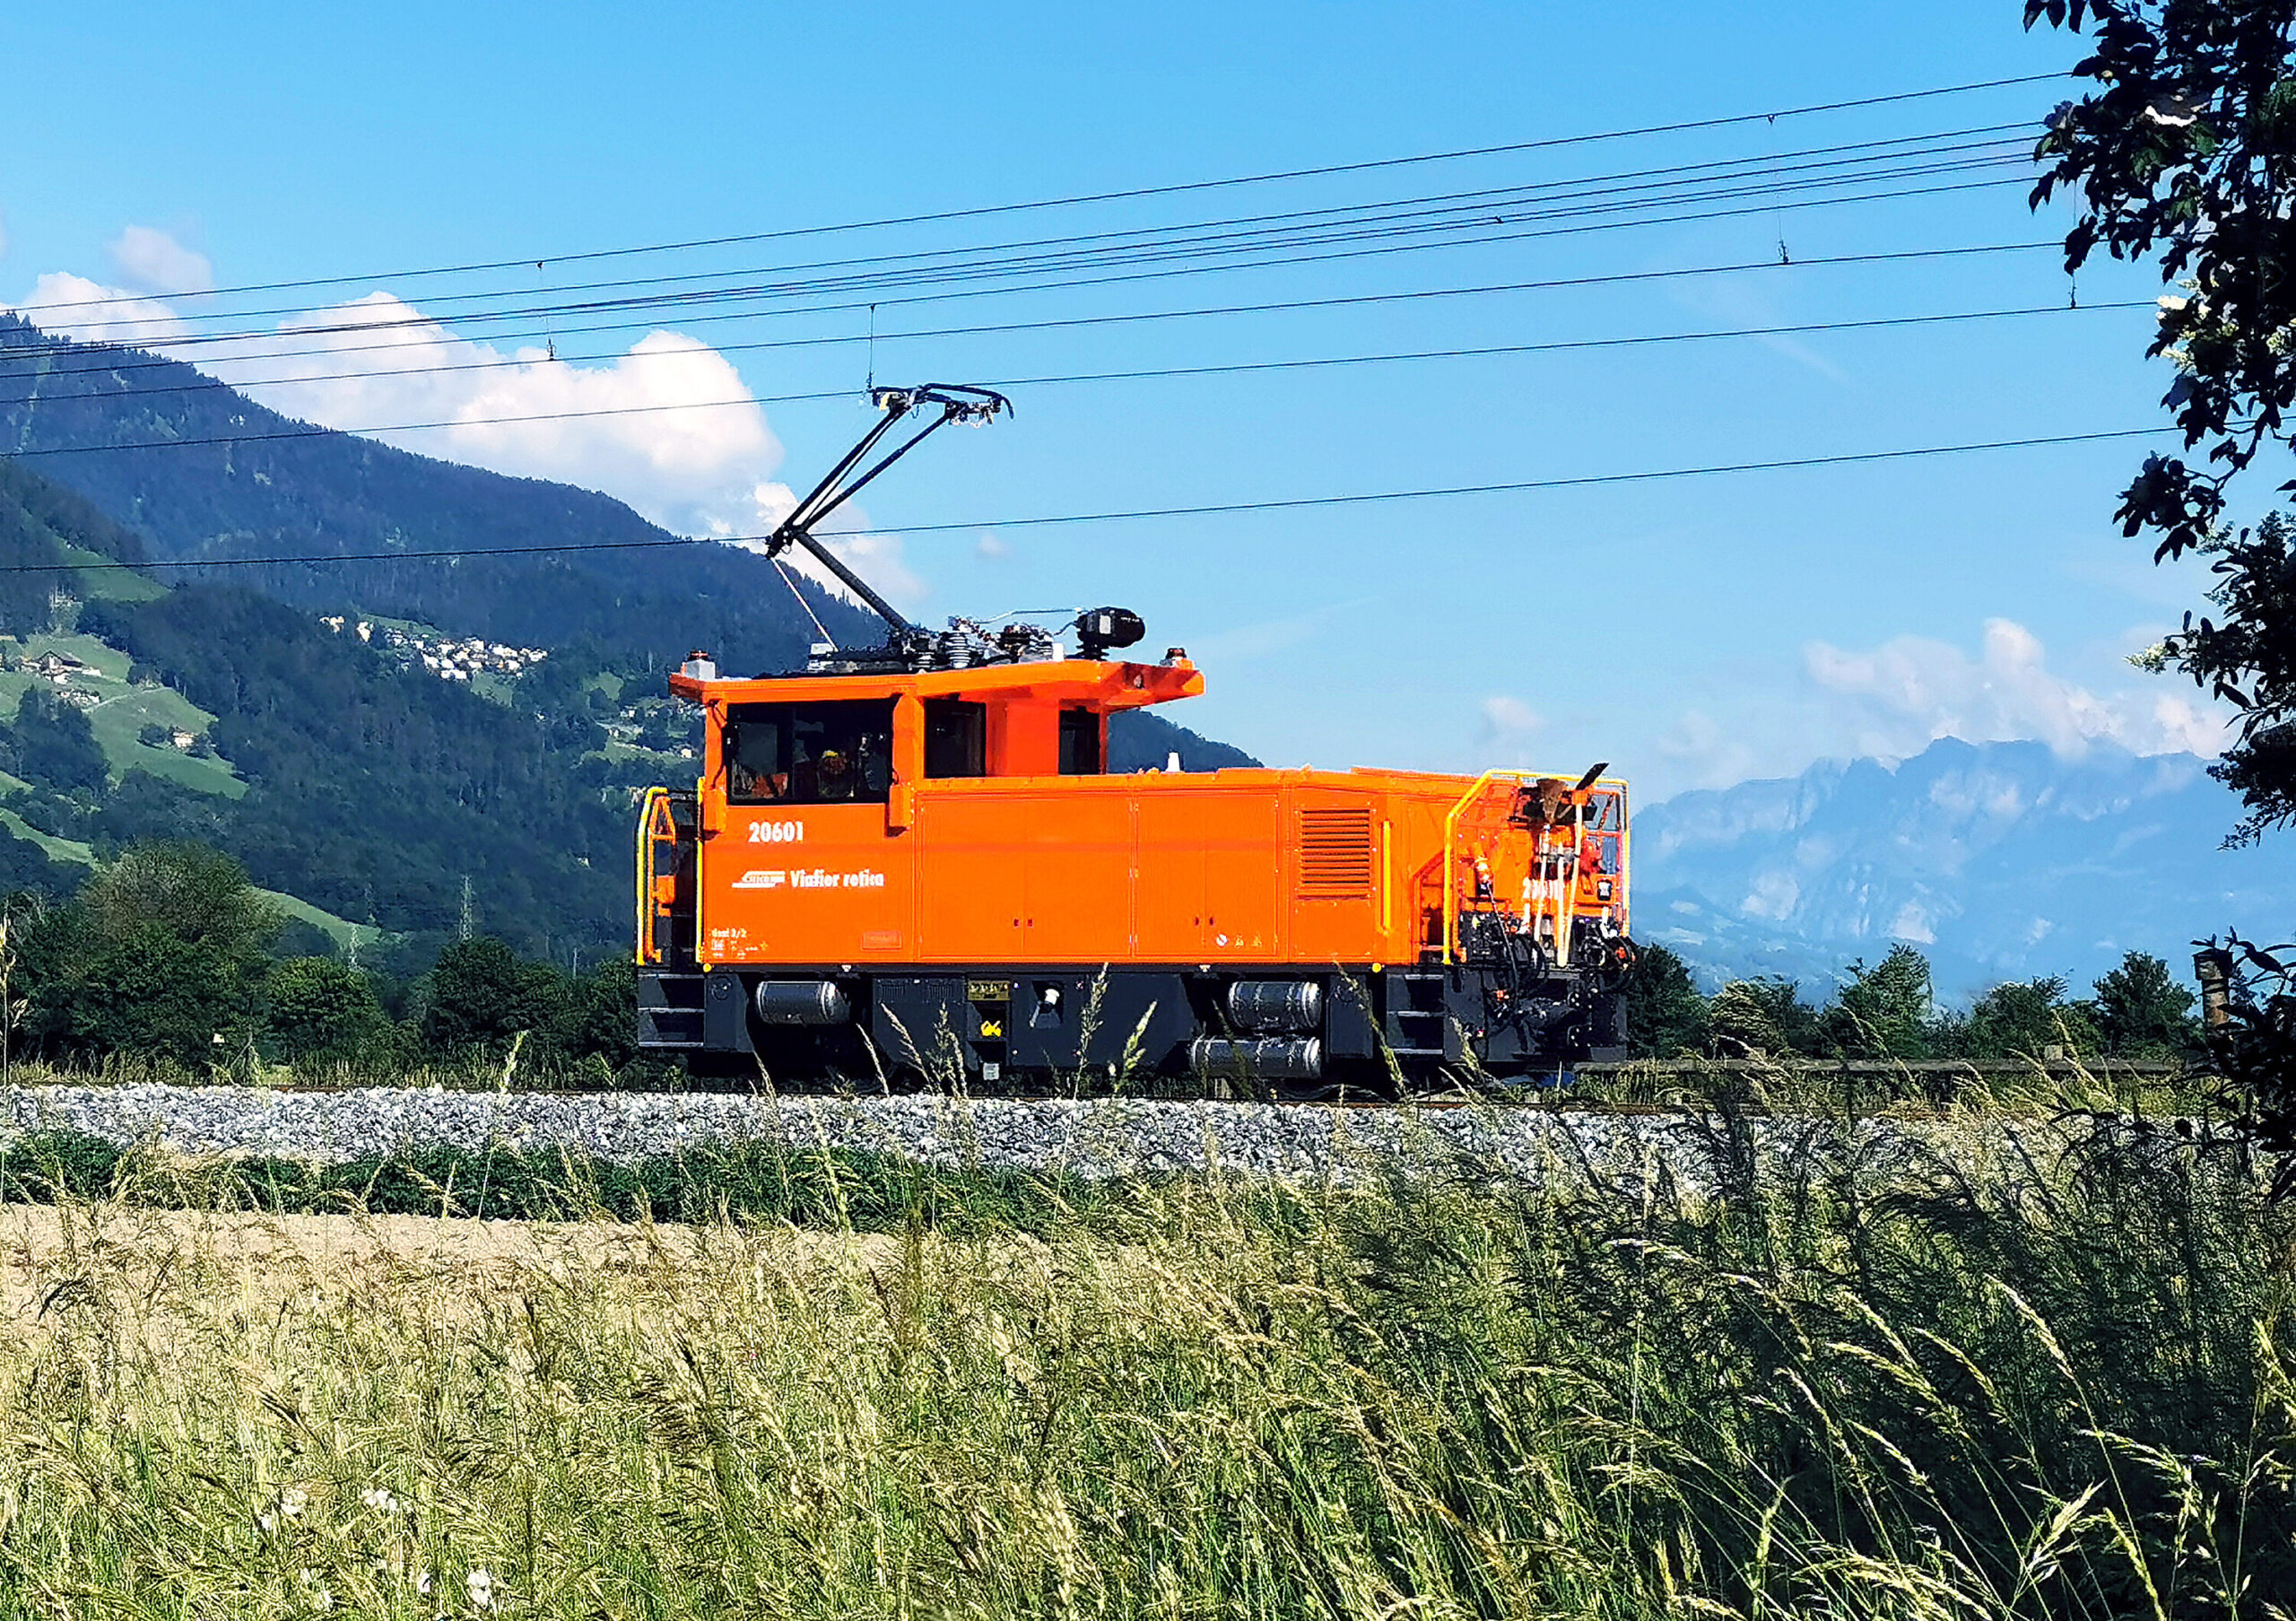 Stadler Geaf 2/2 shunting locomotive for Rhaetian Railway